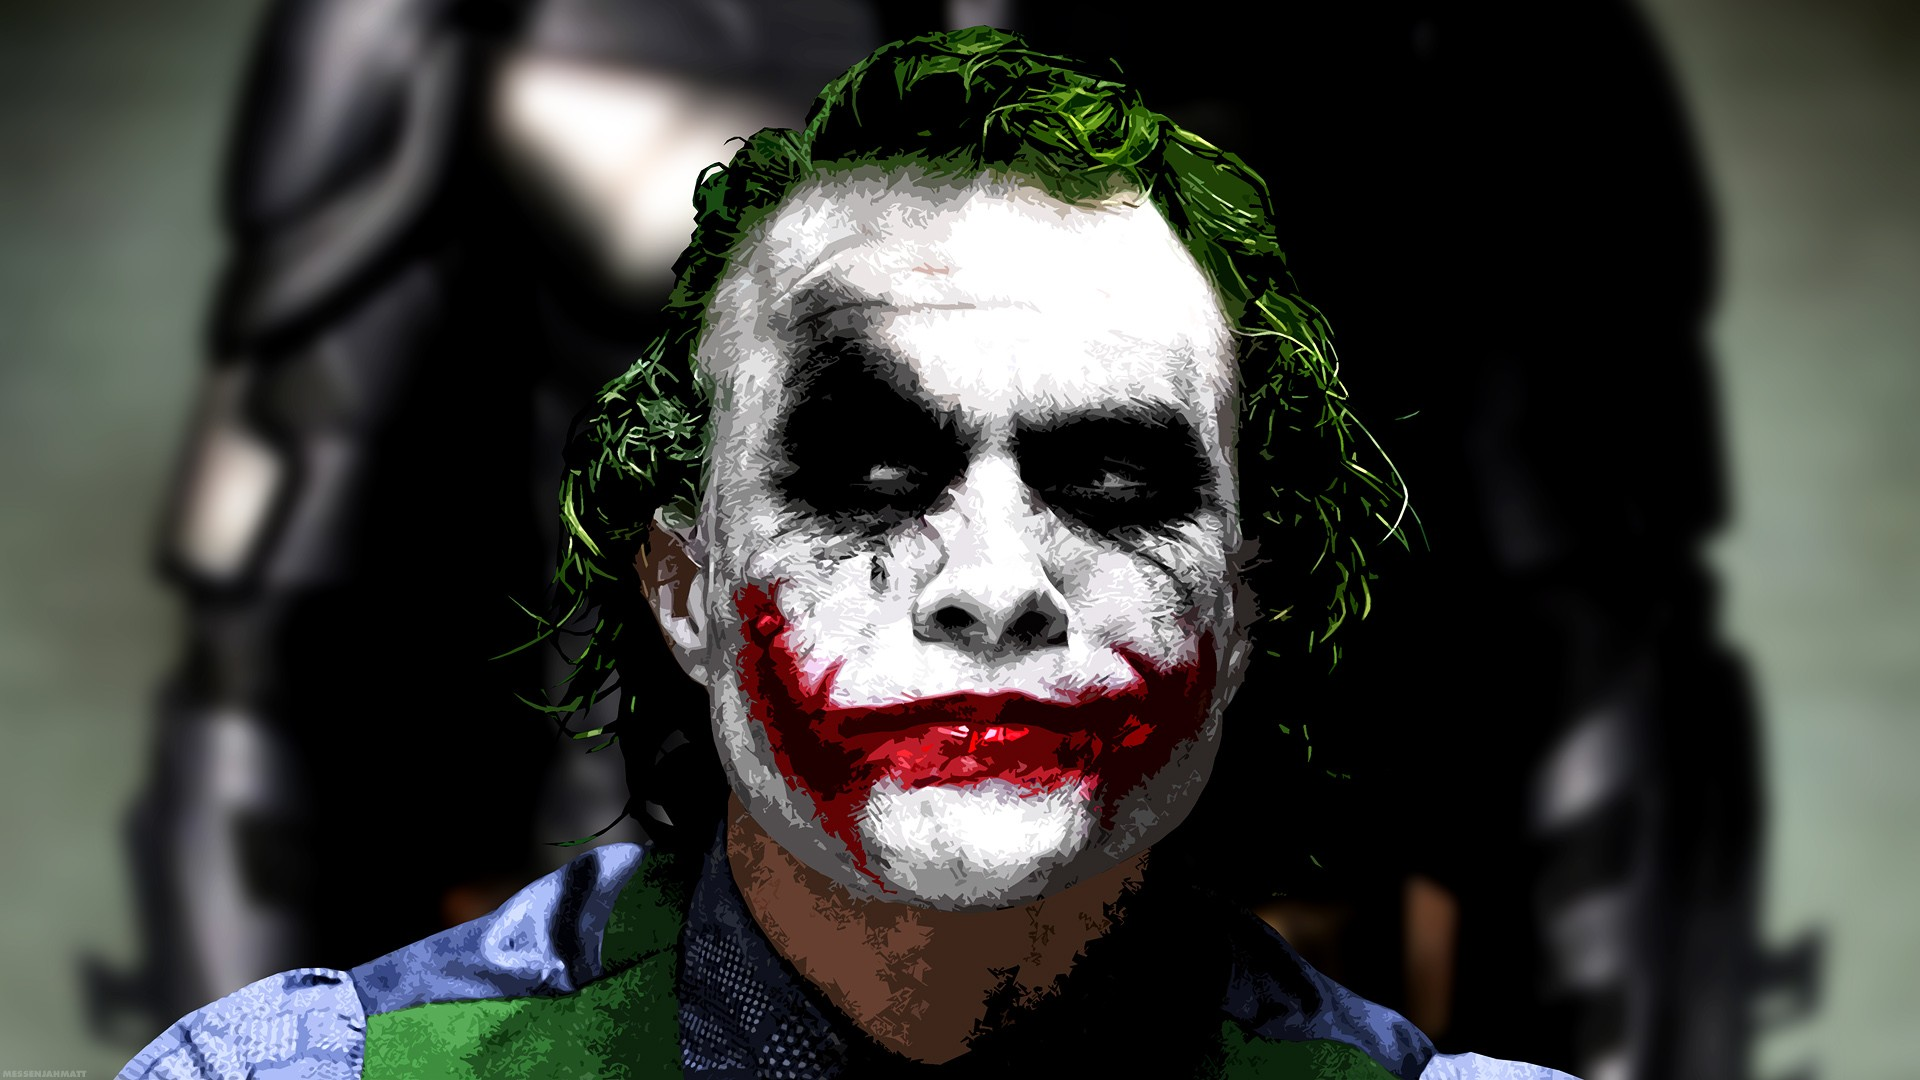 The Joker Heath Ledger Wallpaper Images Pictures   Becuo 1920x1080